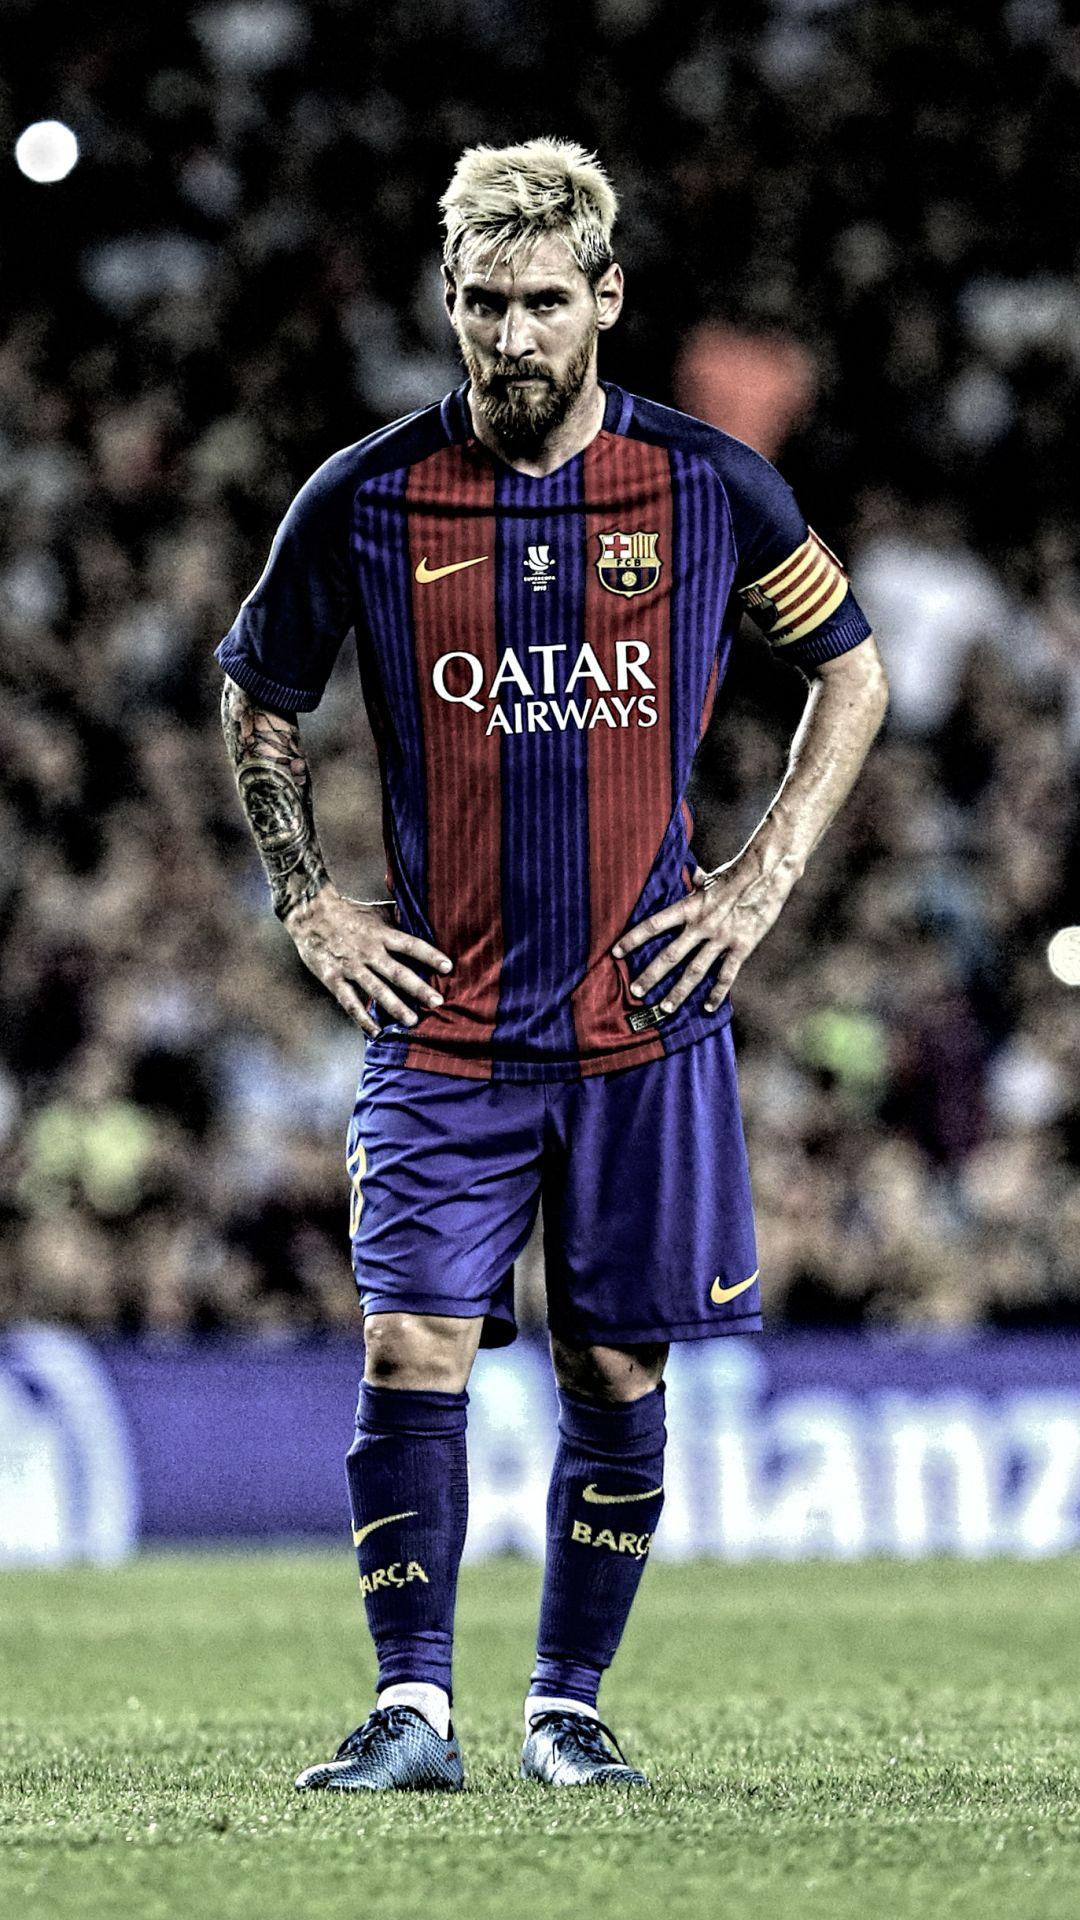 Messi Ultra HD iPhone Wallpapers - Wallpaper Cave